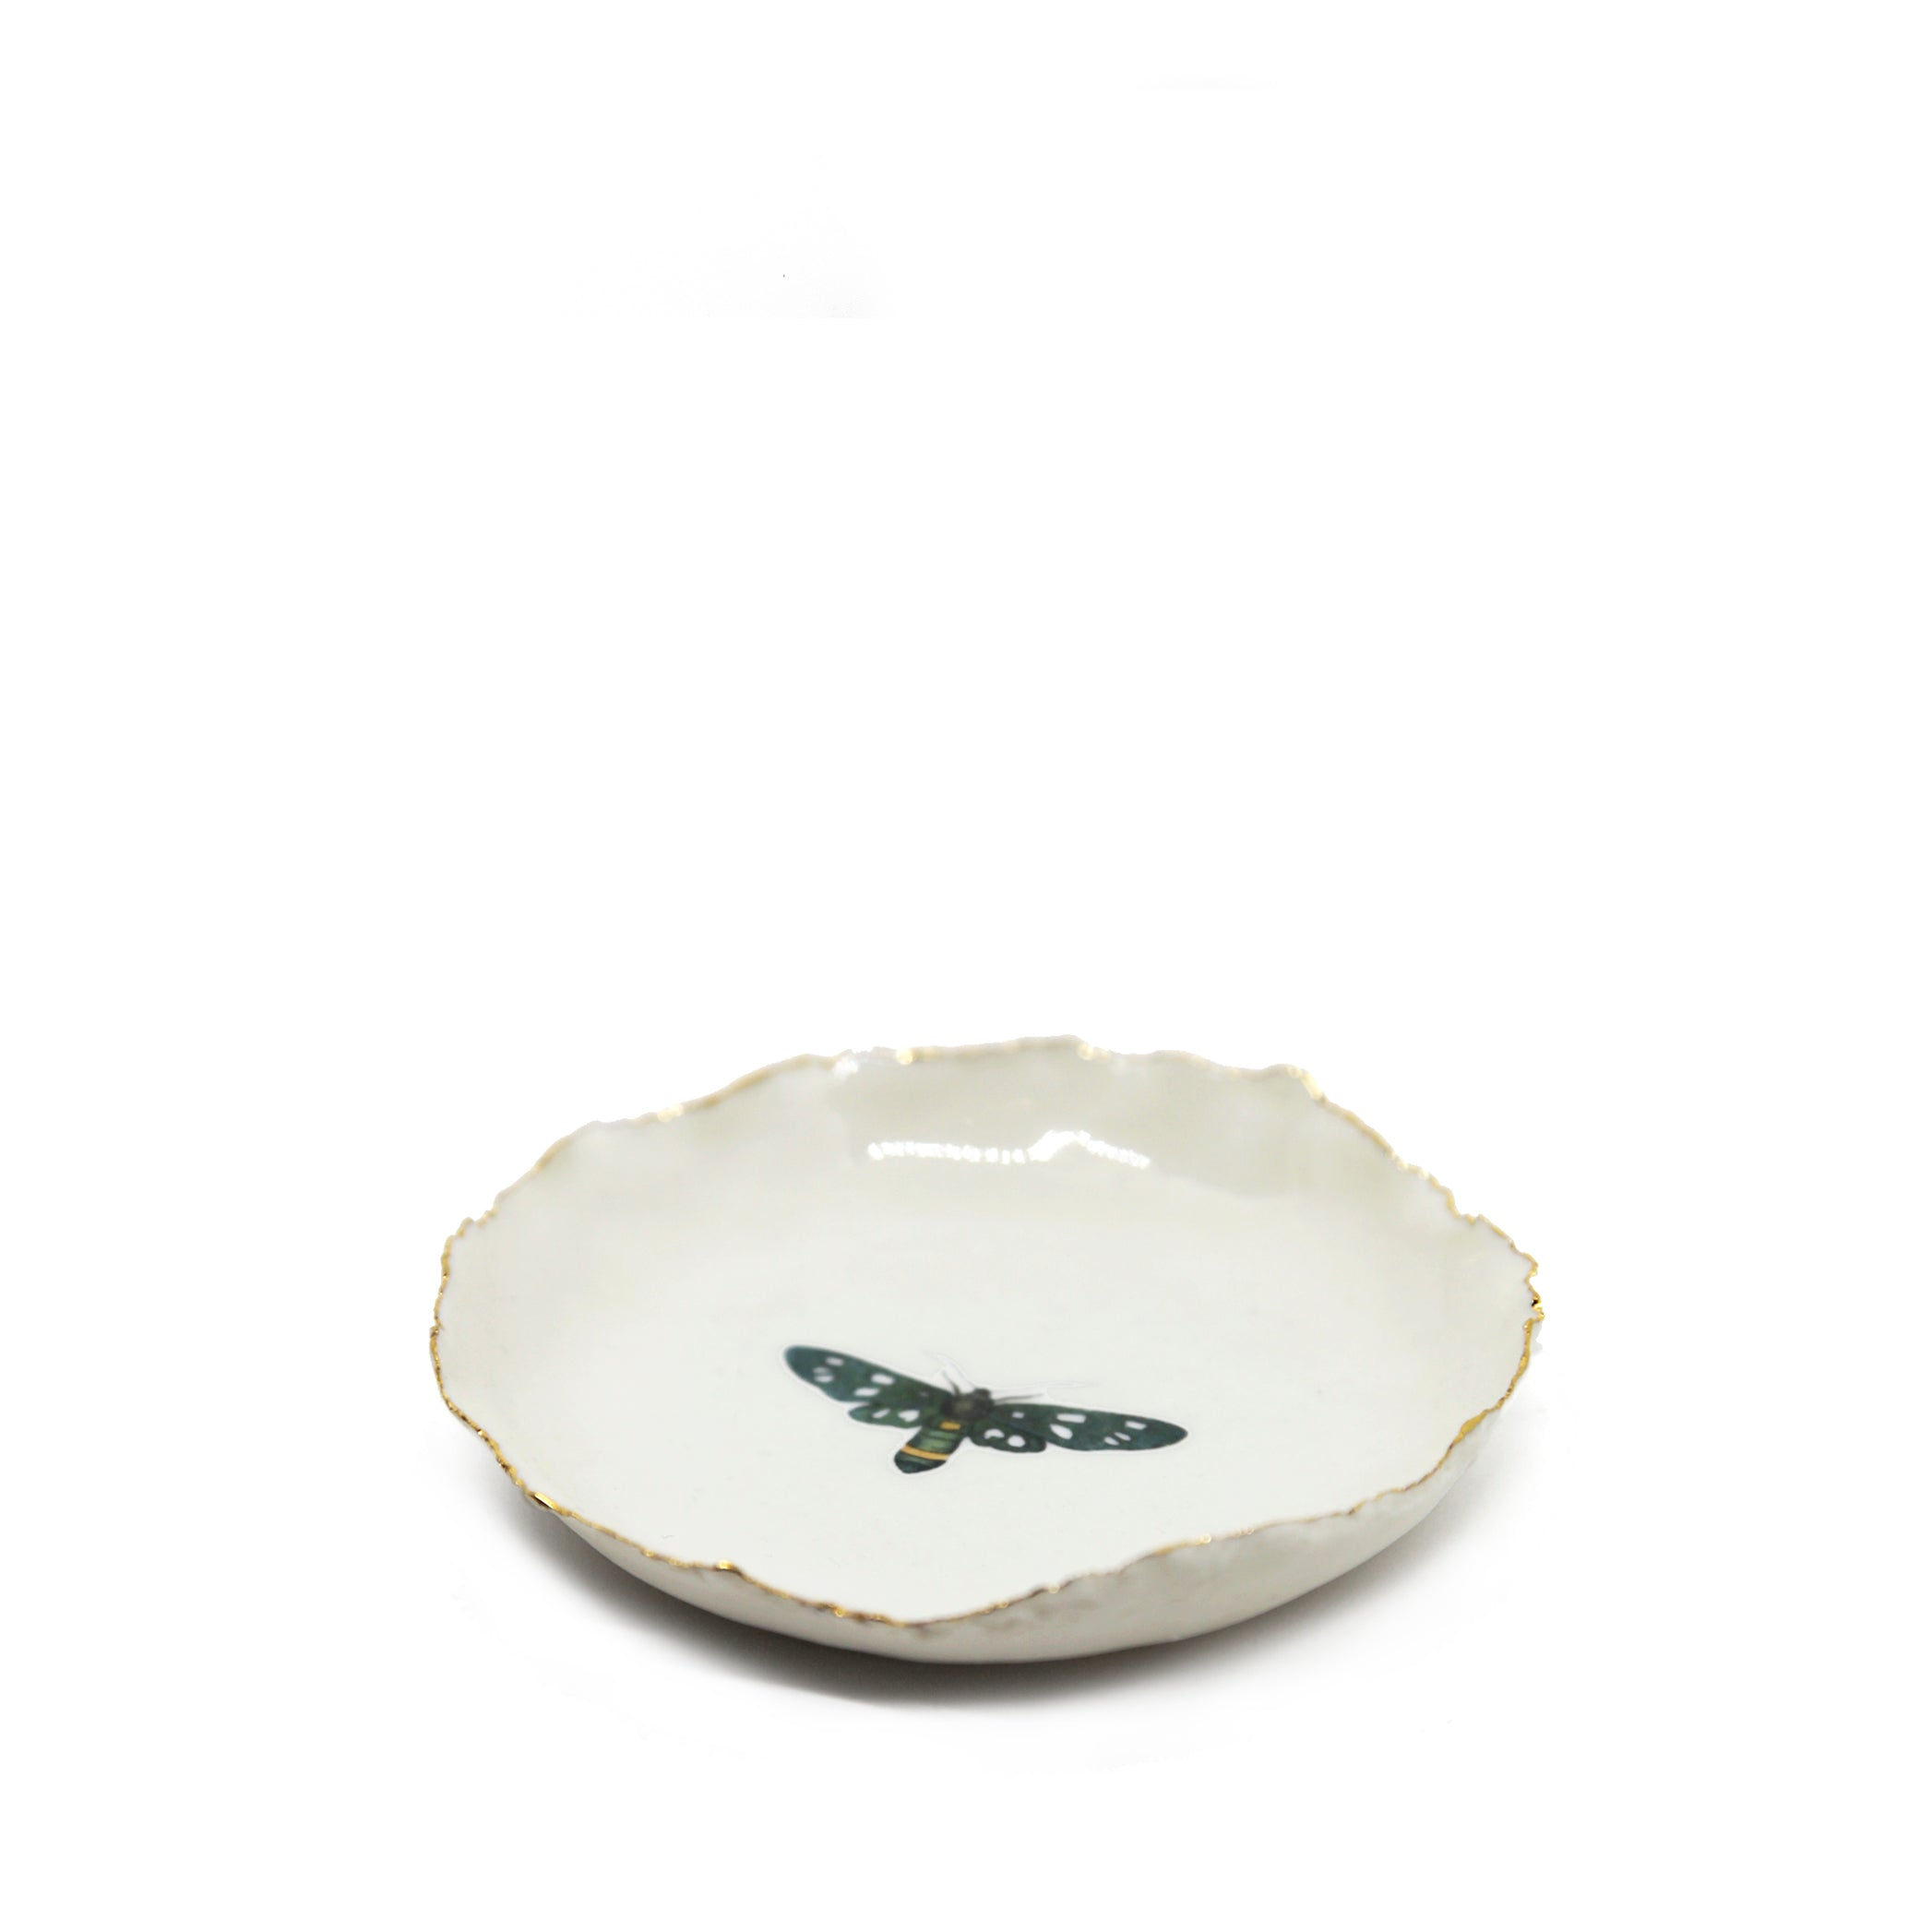 HB Small Jagged Dish with Coloured Butterfly, 12cm